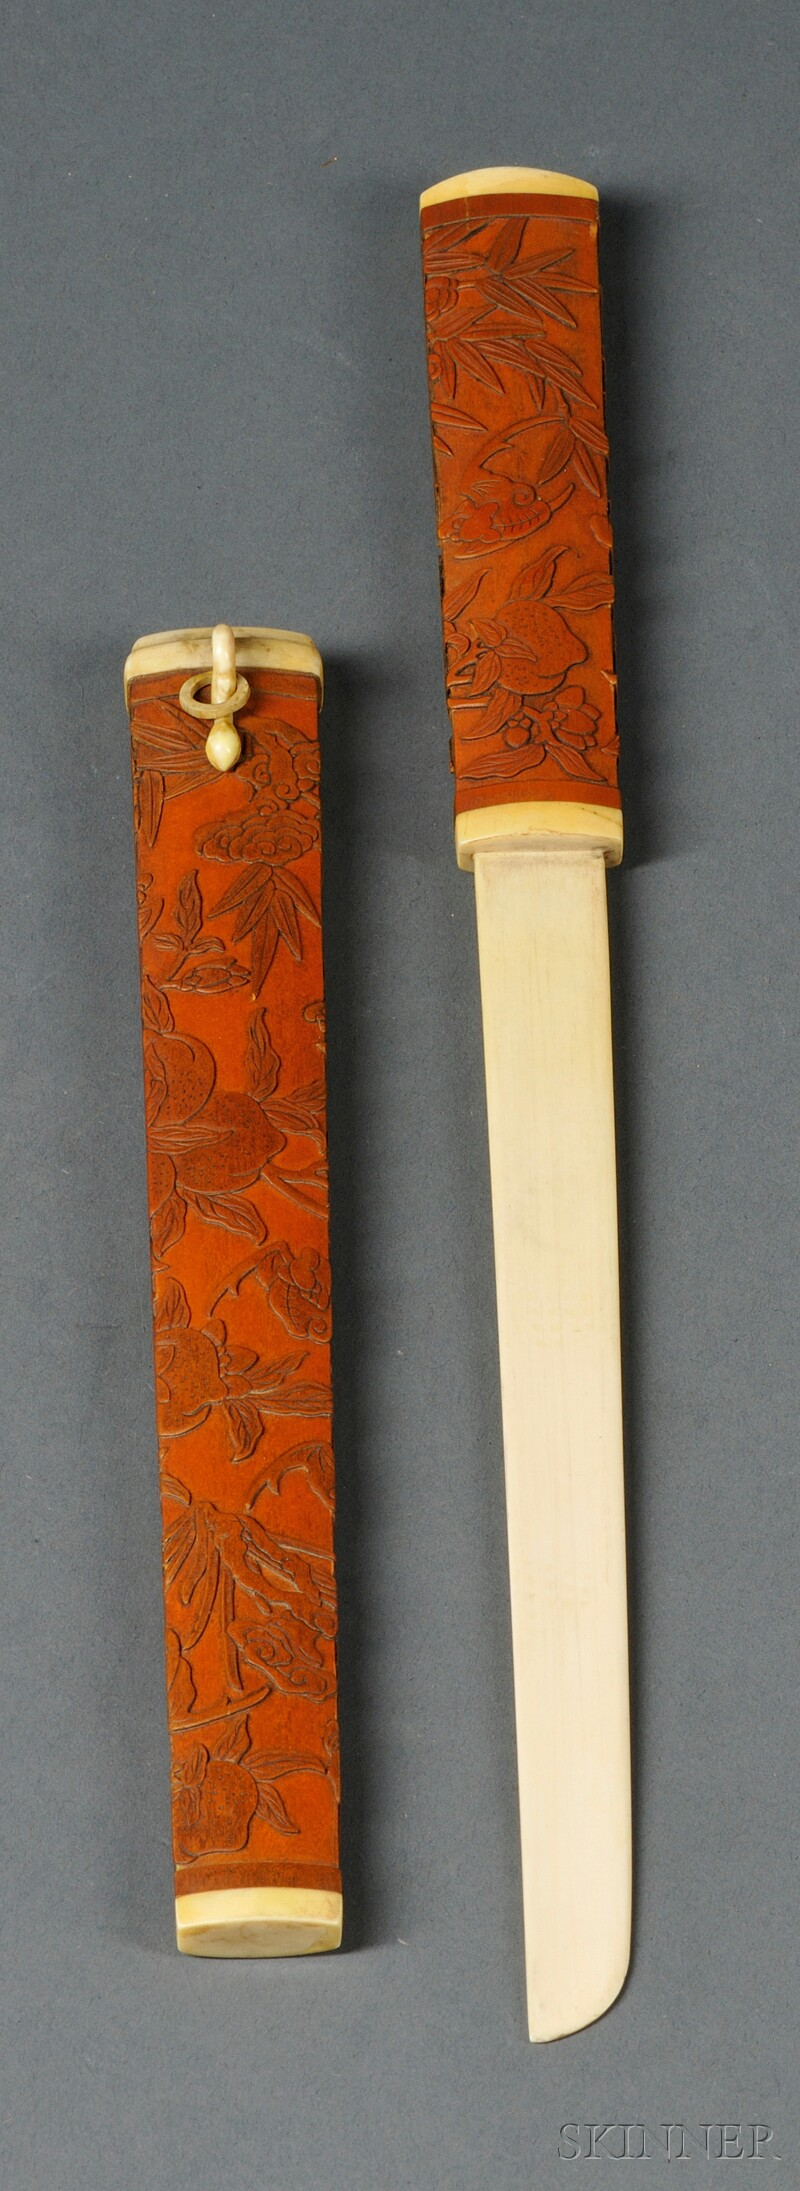 Bamboo and Ivory Knife